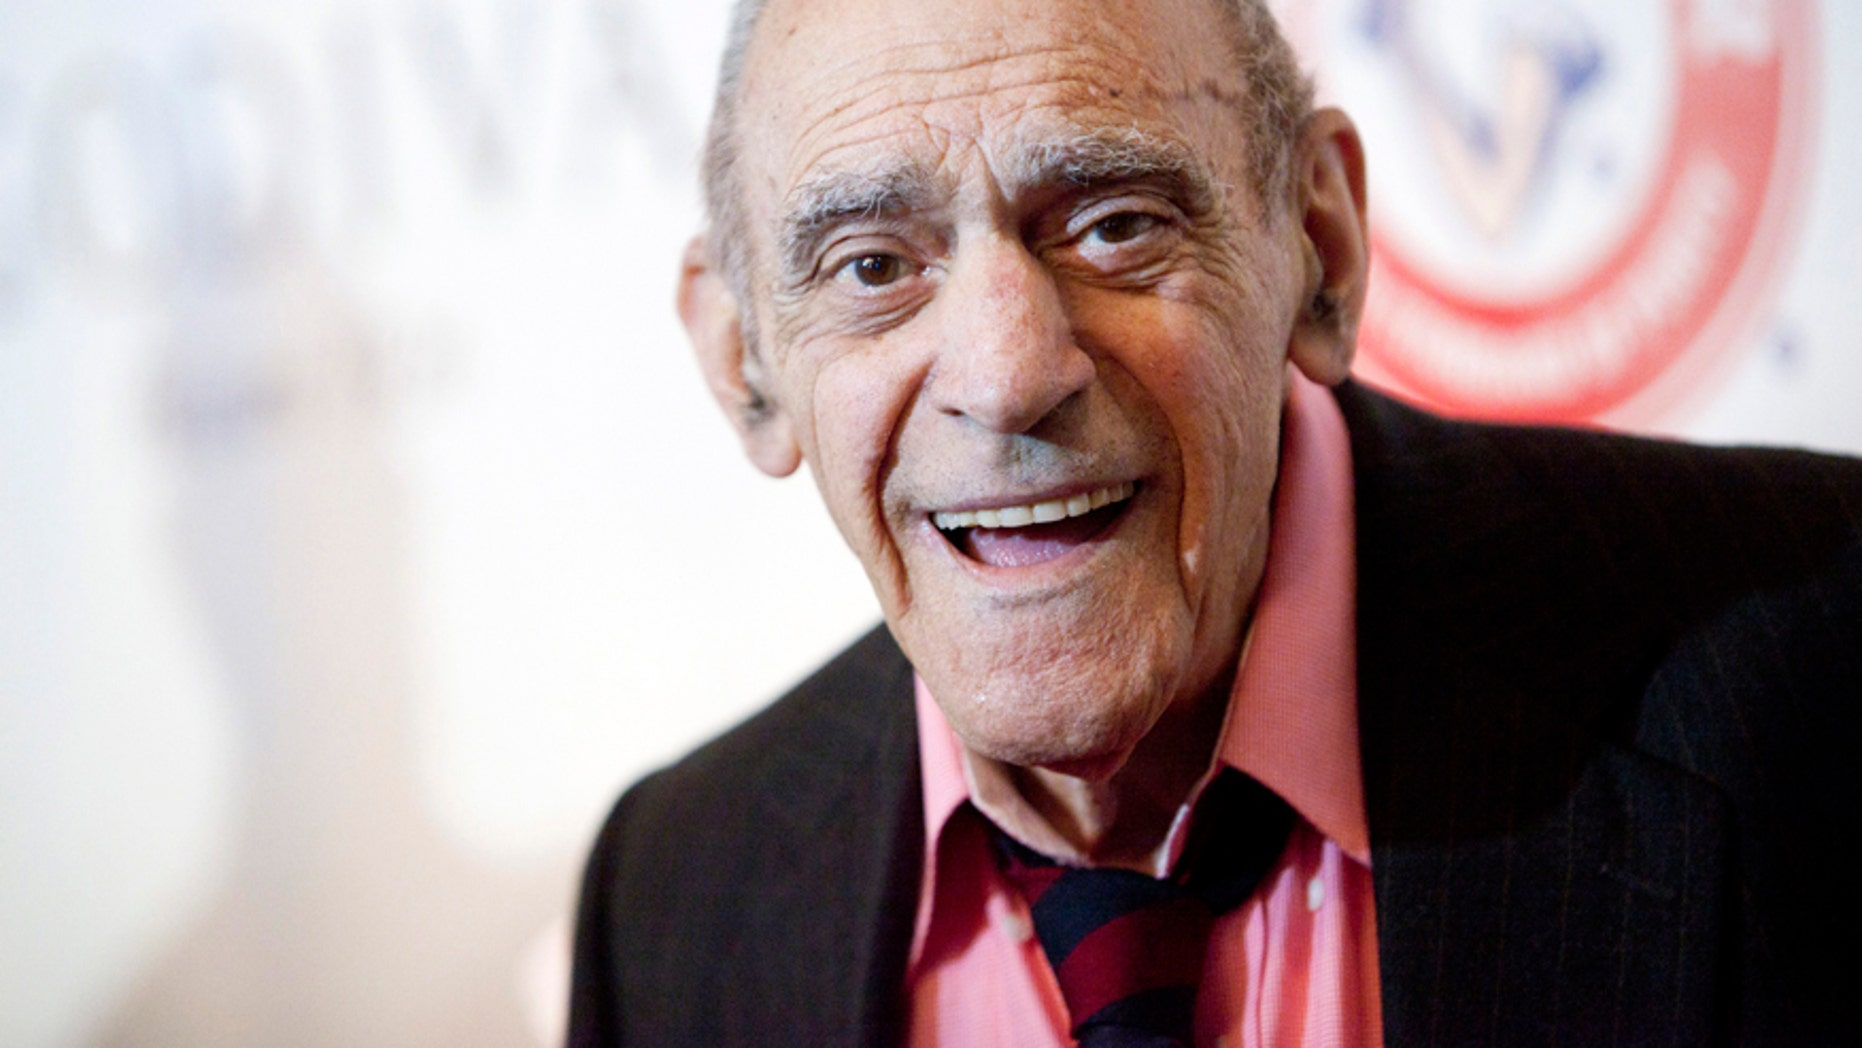 Actor Abe Vigoda smiles as he attends the Friars Club Roast of Betty White in New York May 16, 2012.